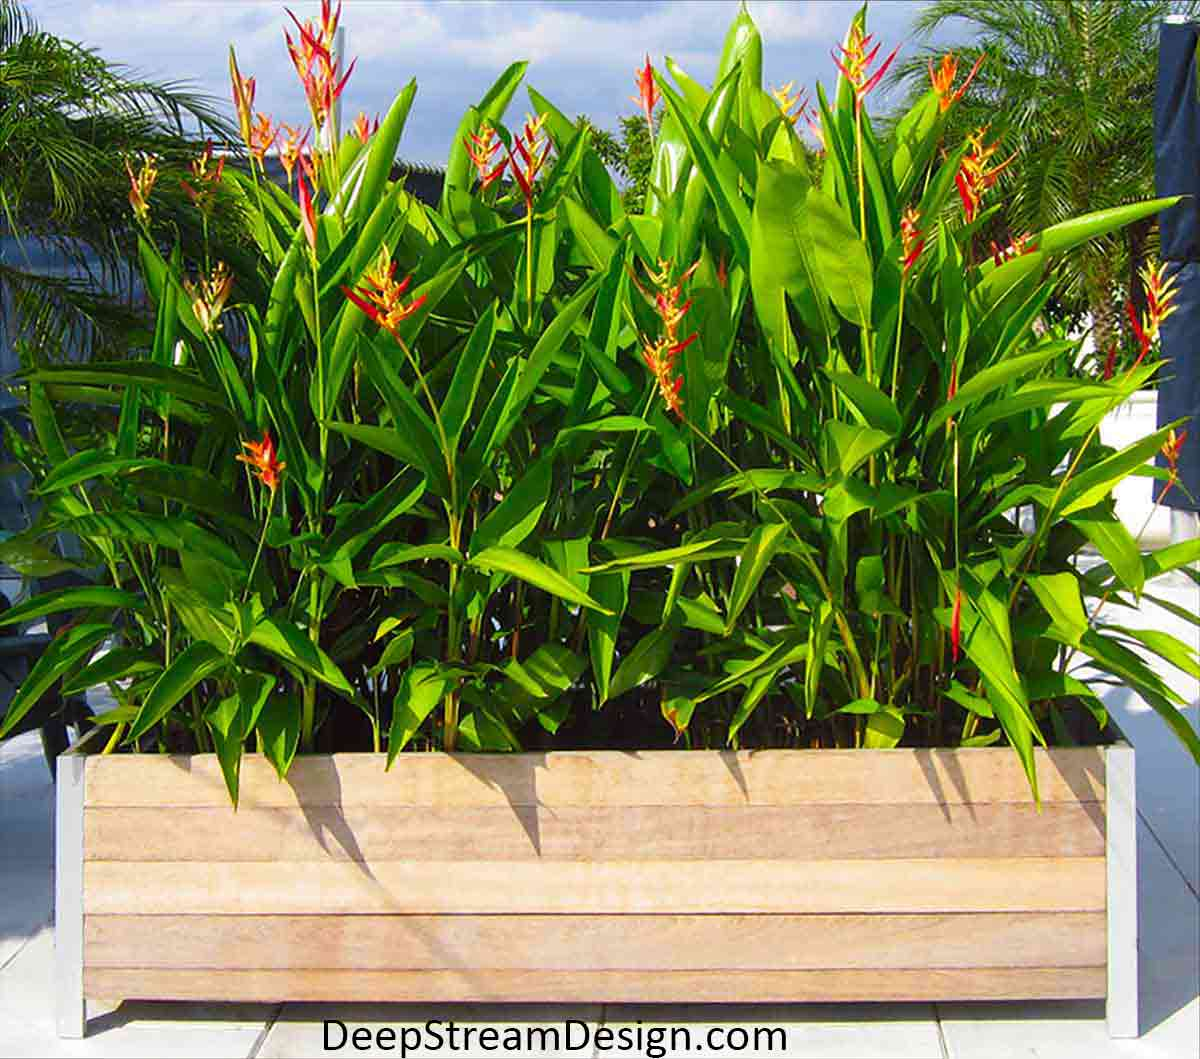 Large Wood Garden Planters on a tropical roof terrace landscaped with tall bright green Birds of Paradise with bright red and orange flowers.